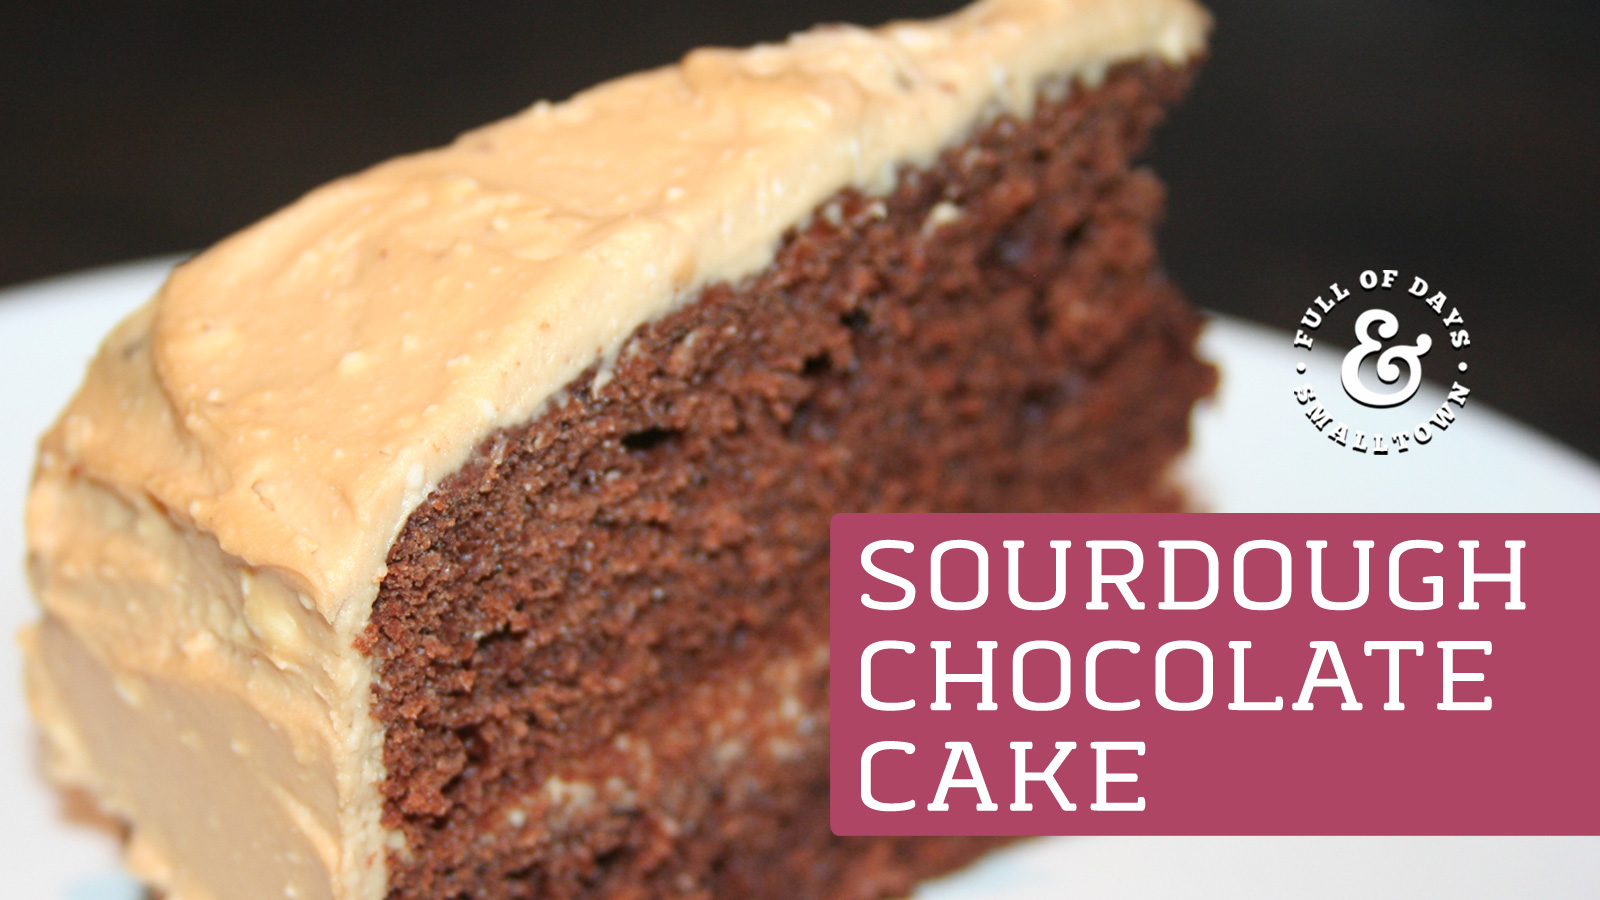 Sourdough-Chocolate-Cake_Full-of-Days_1600-x-900